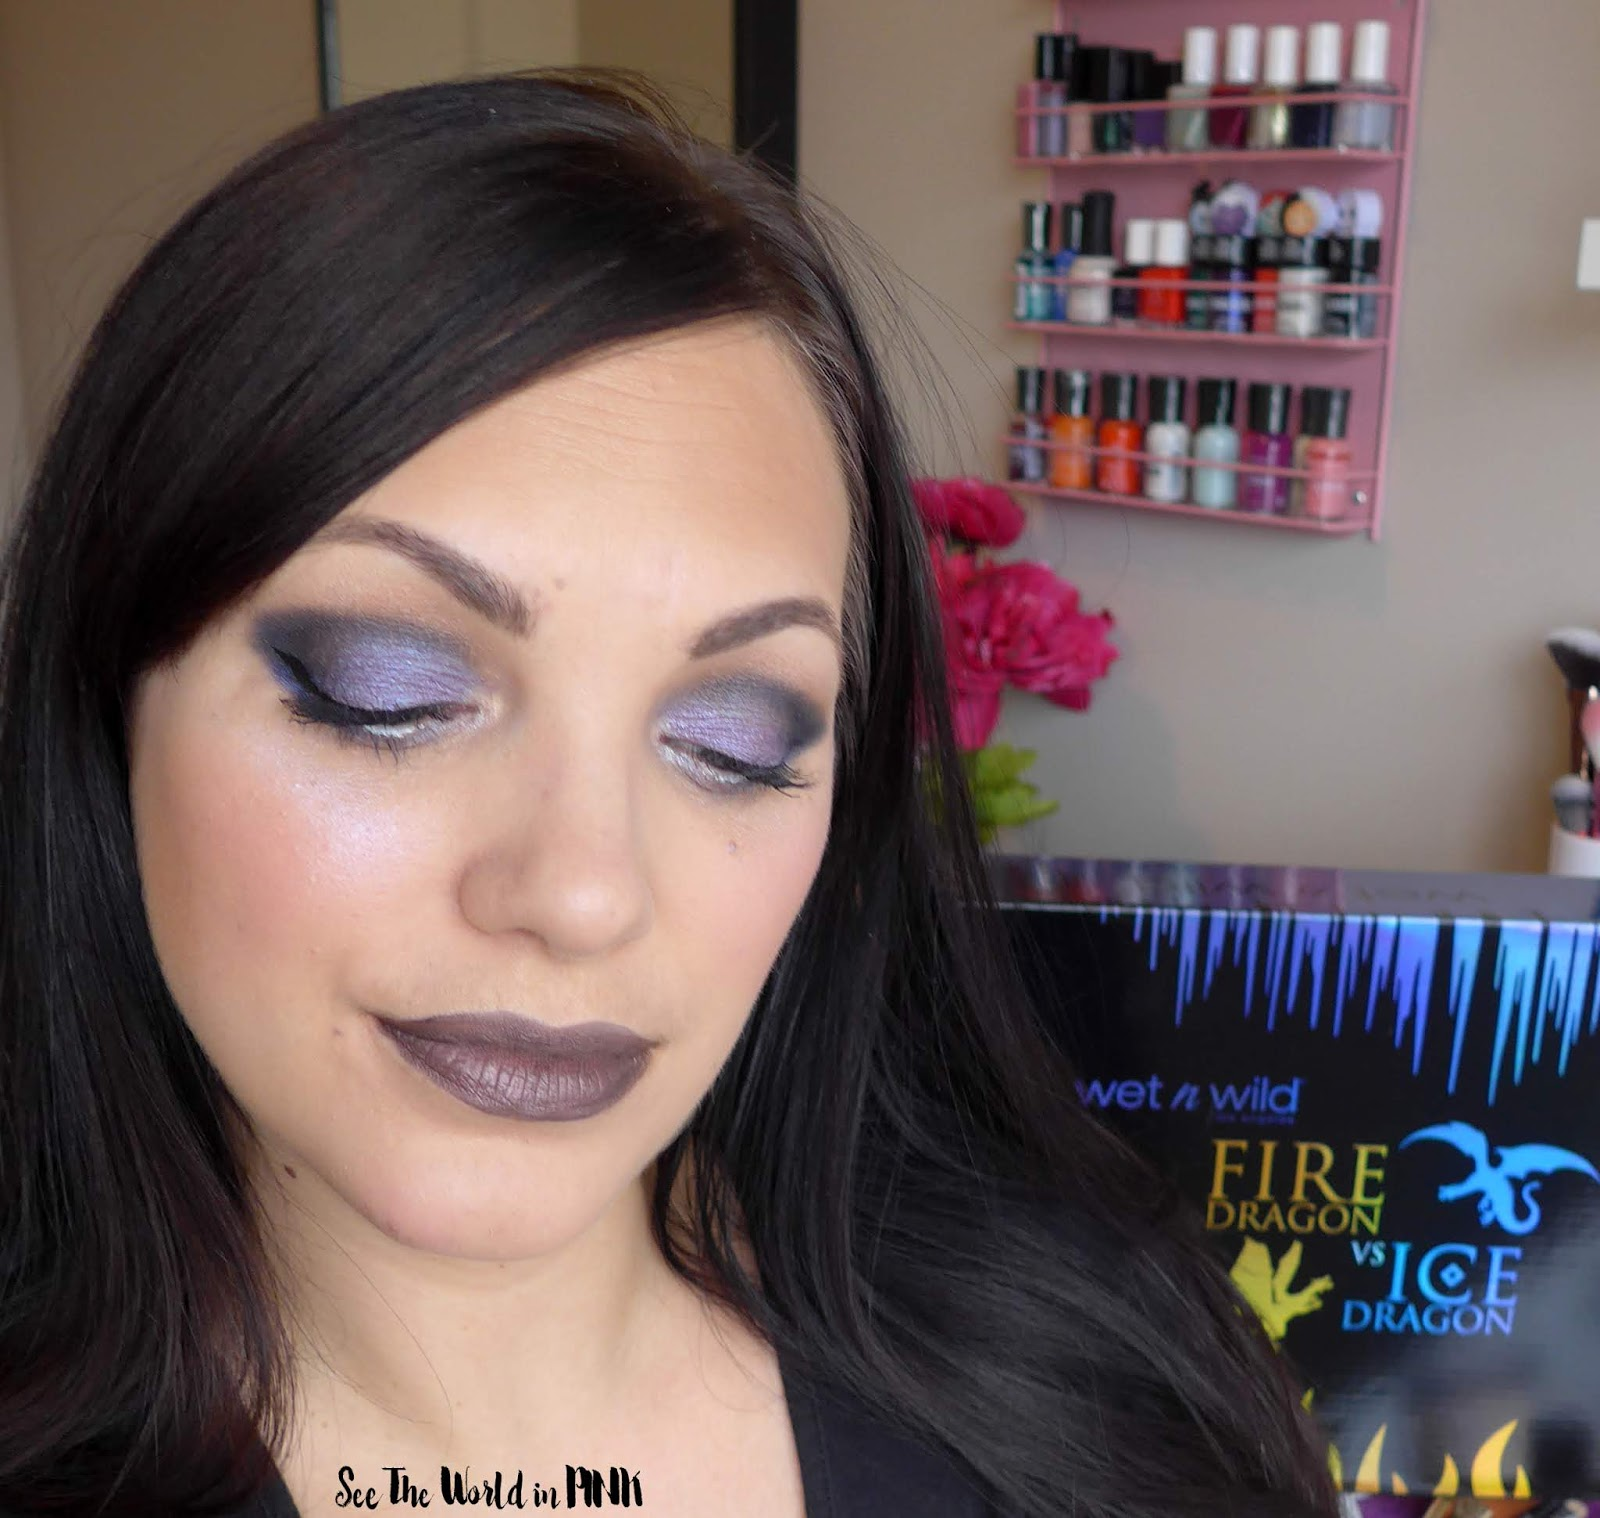 Wet N Wild Fire & Ice - Fire Dragon vs. Ice Dragon Makeup Looks, Swatches and Reviews